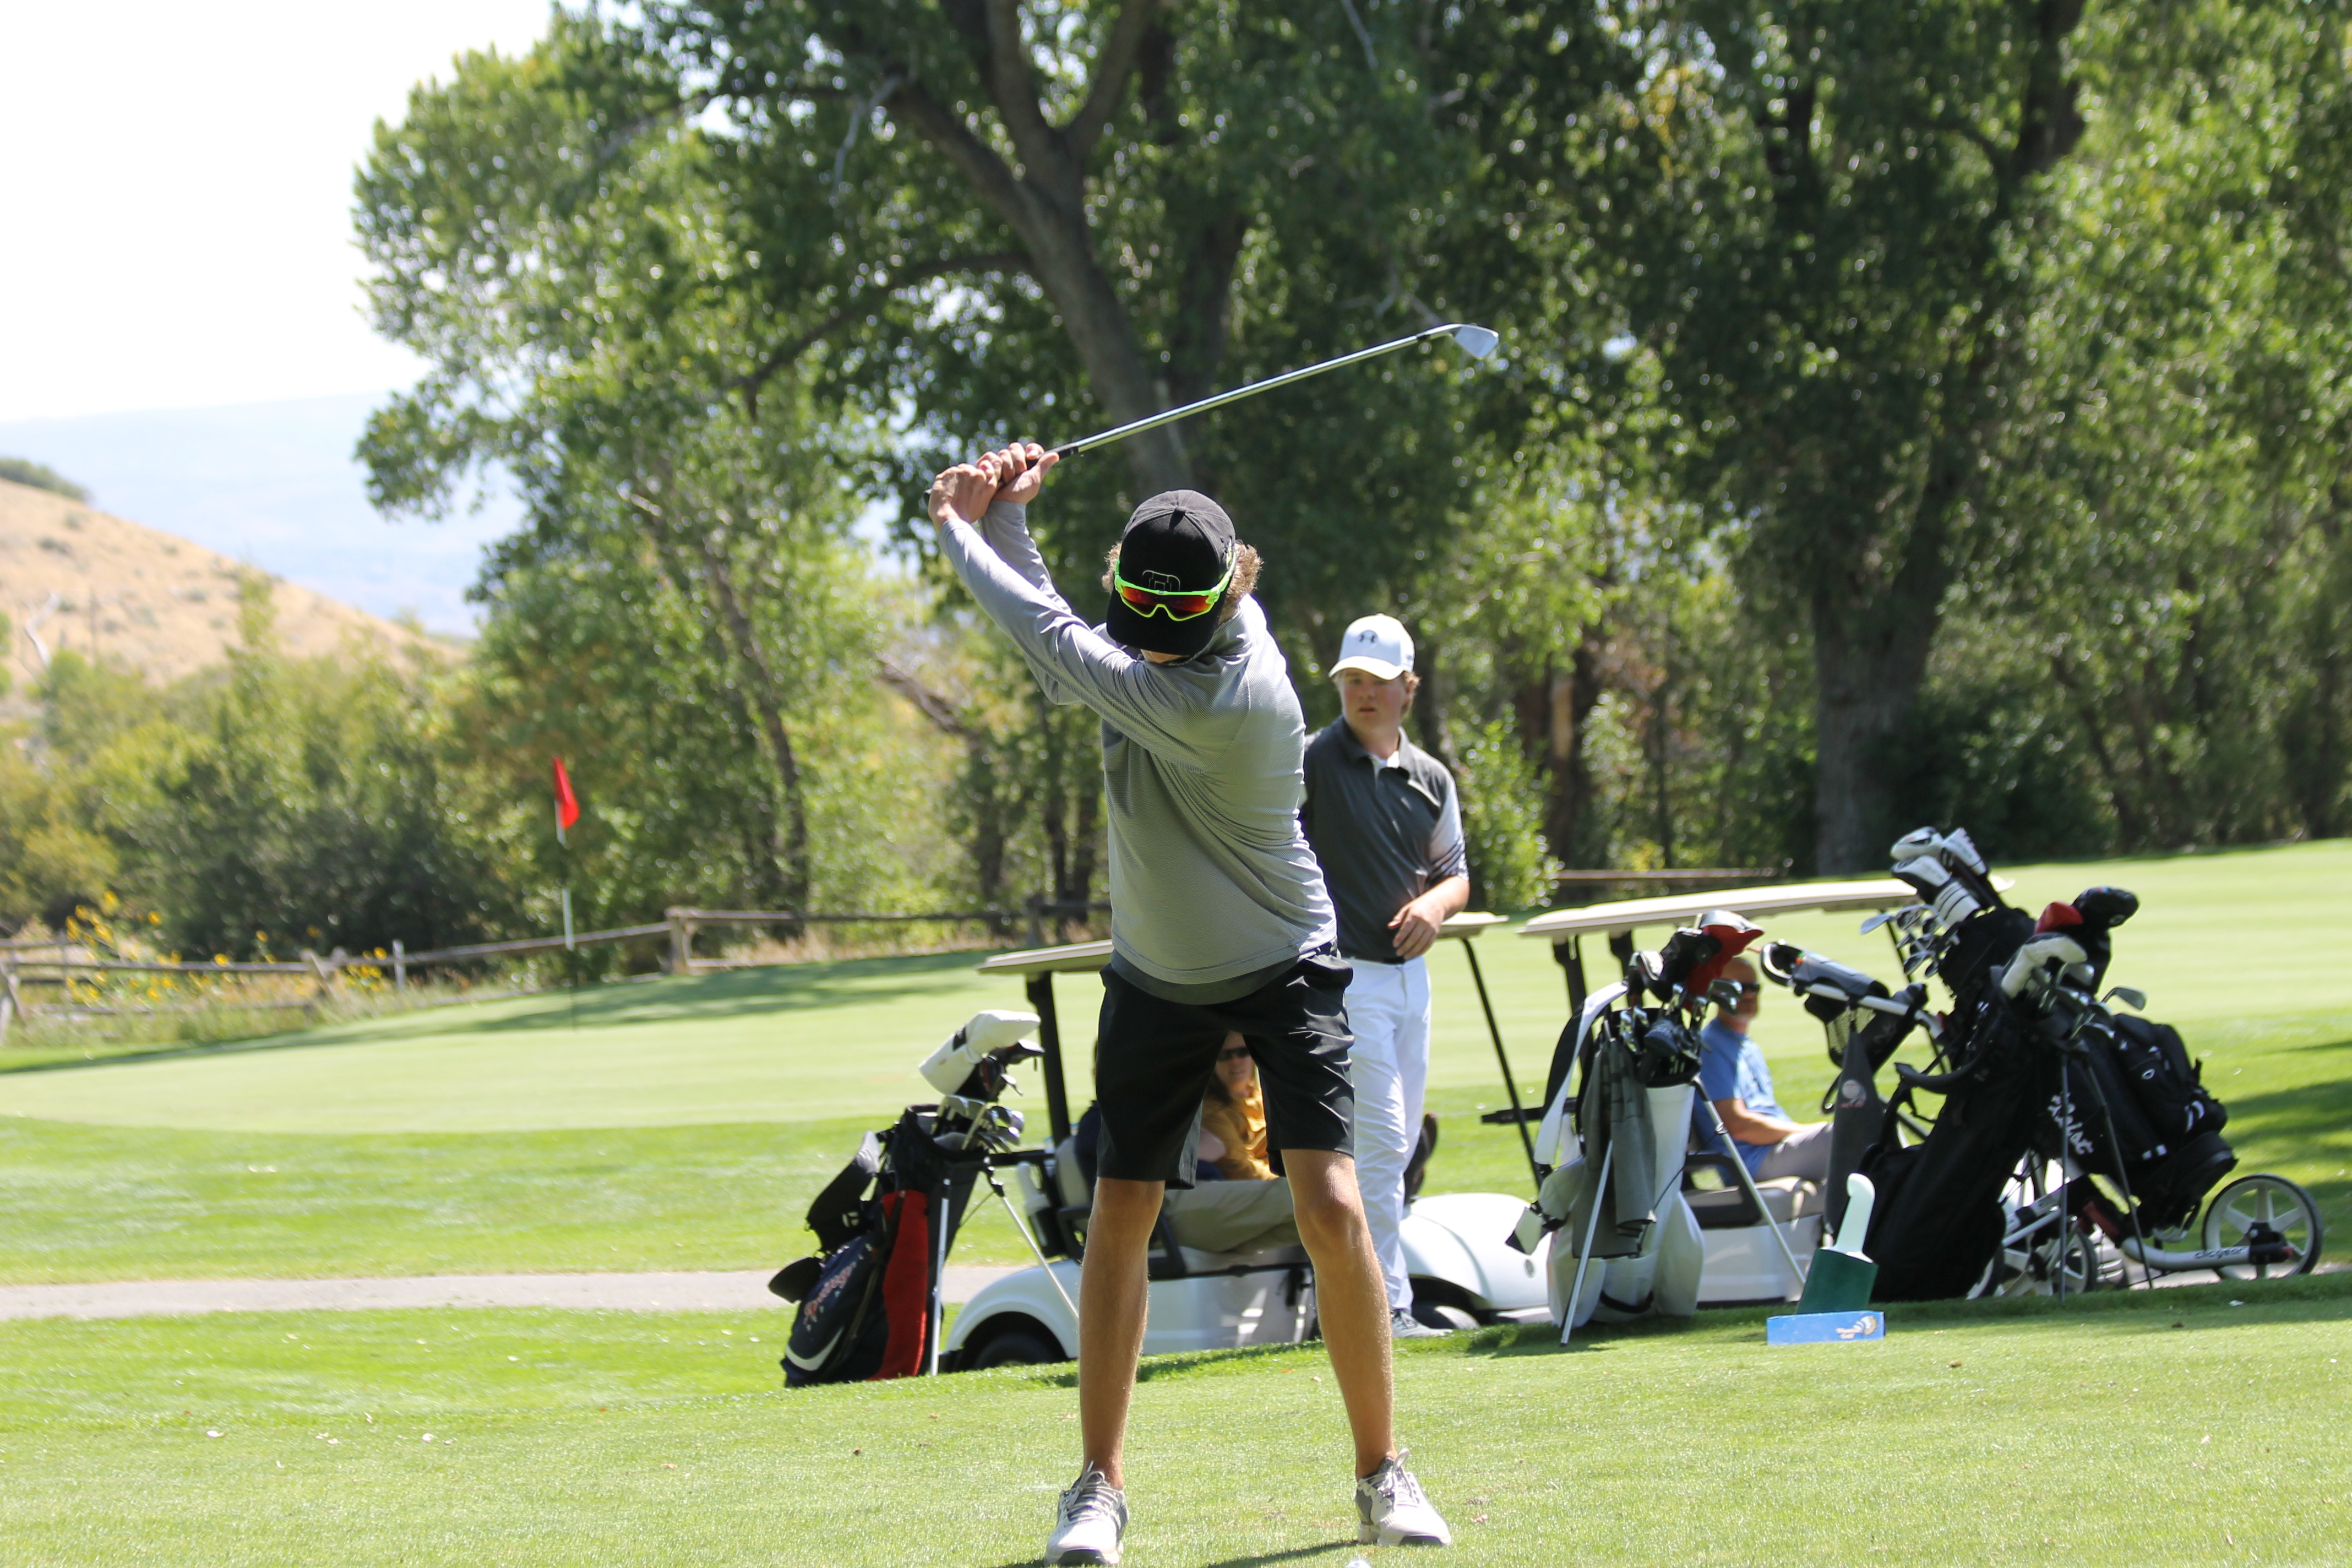 Boys Golf Tryouts on July 15th and 16th